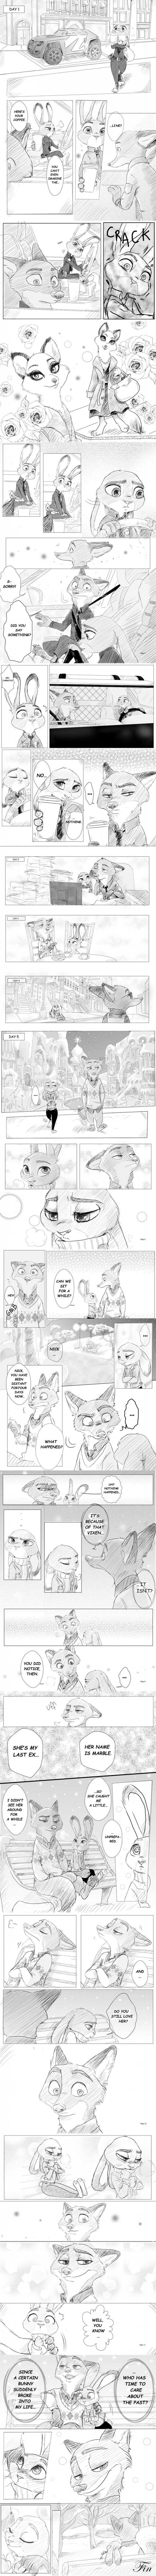 Newest Zootopia comic (by Rem289) <-- THIS WAS AMAZING